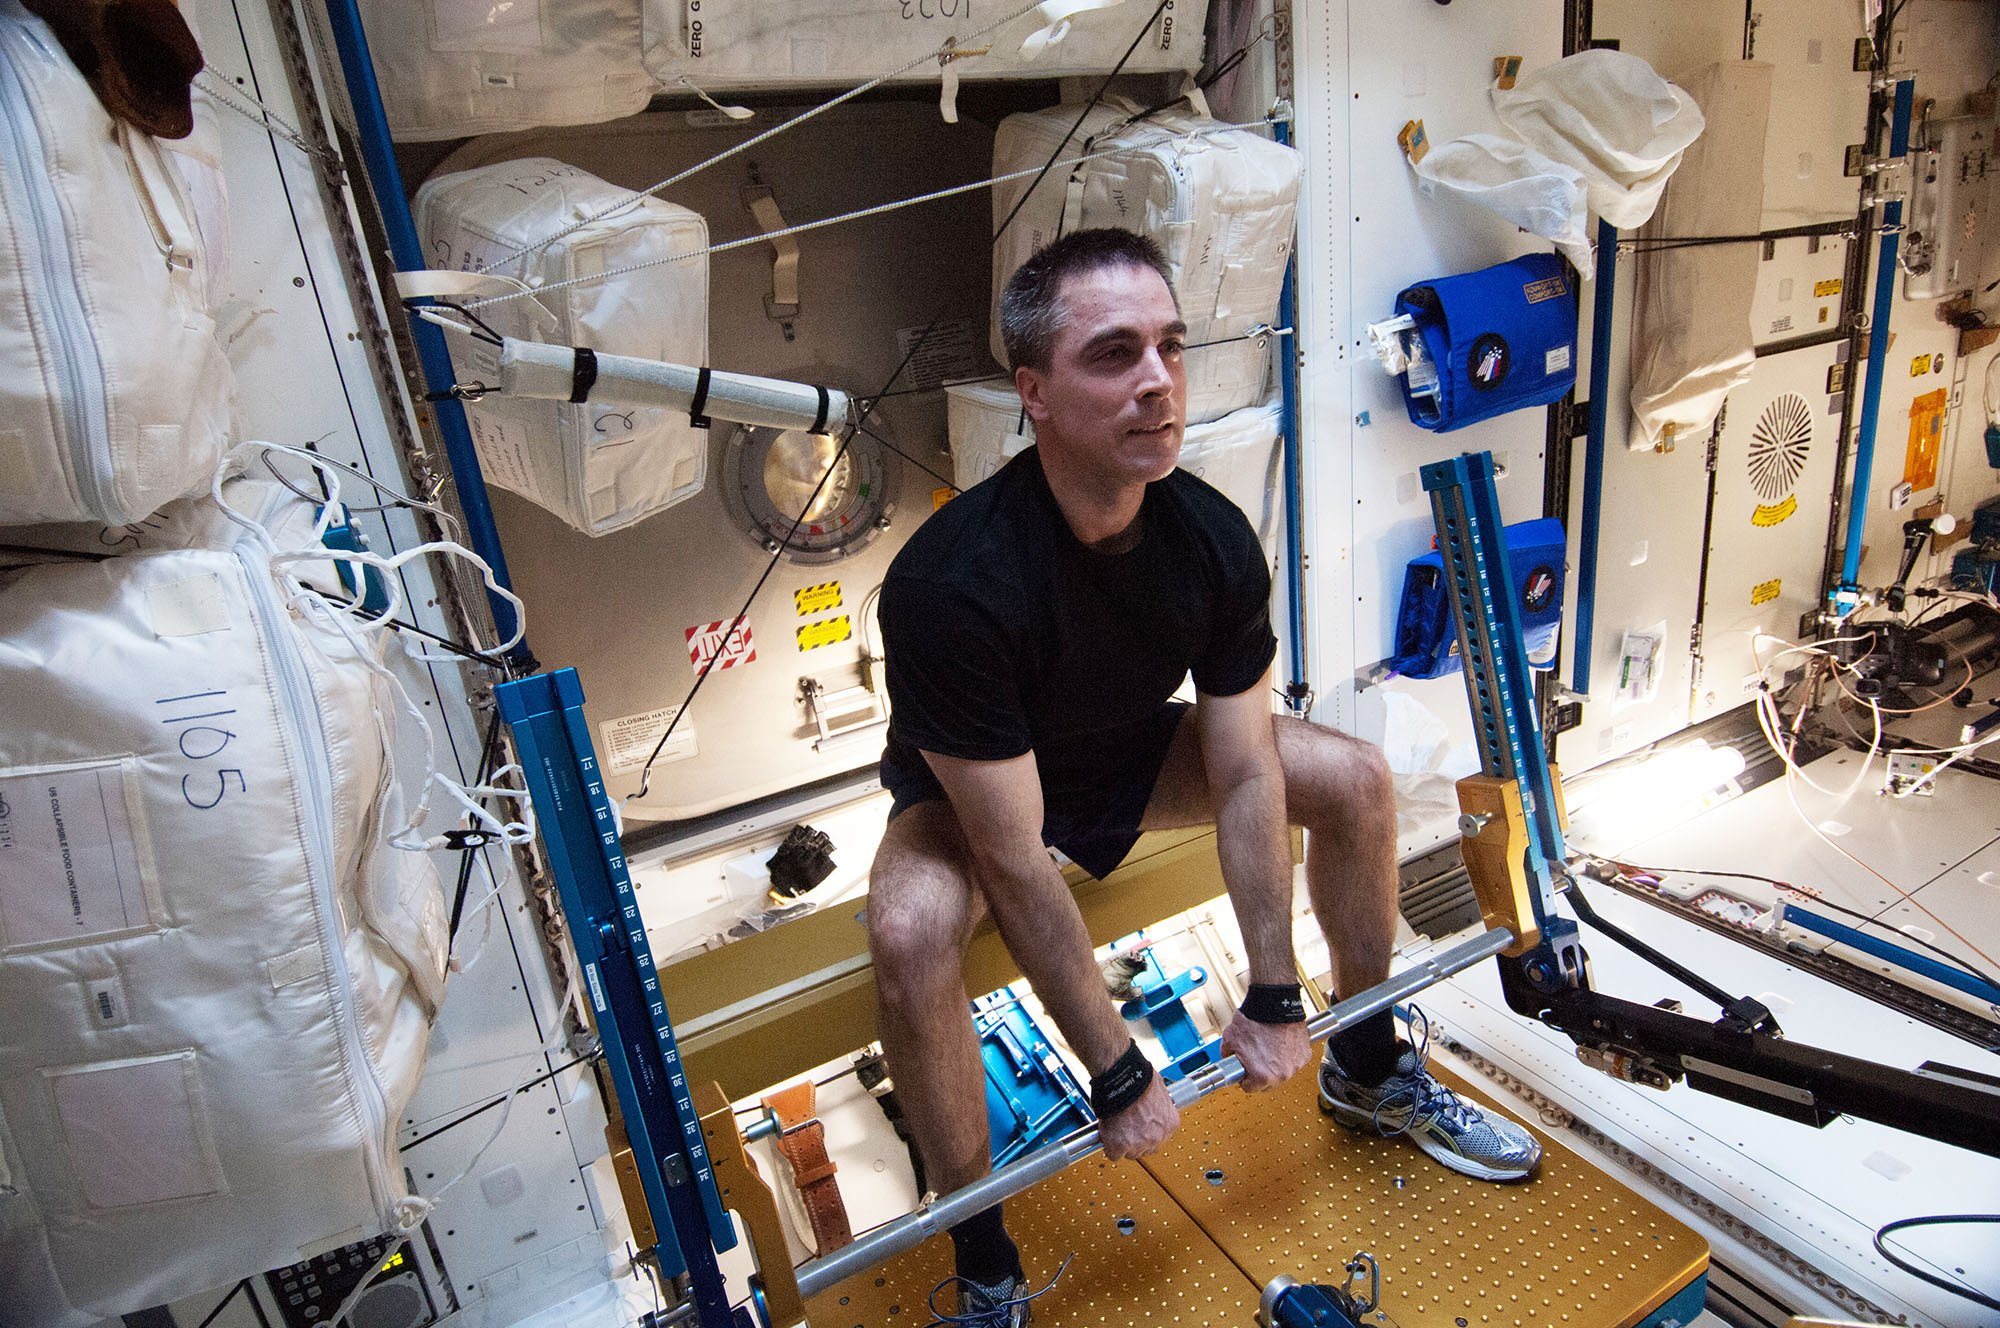 Resistance training on International Space Station ...